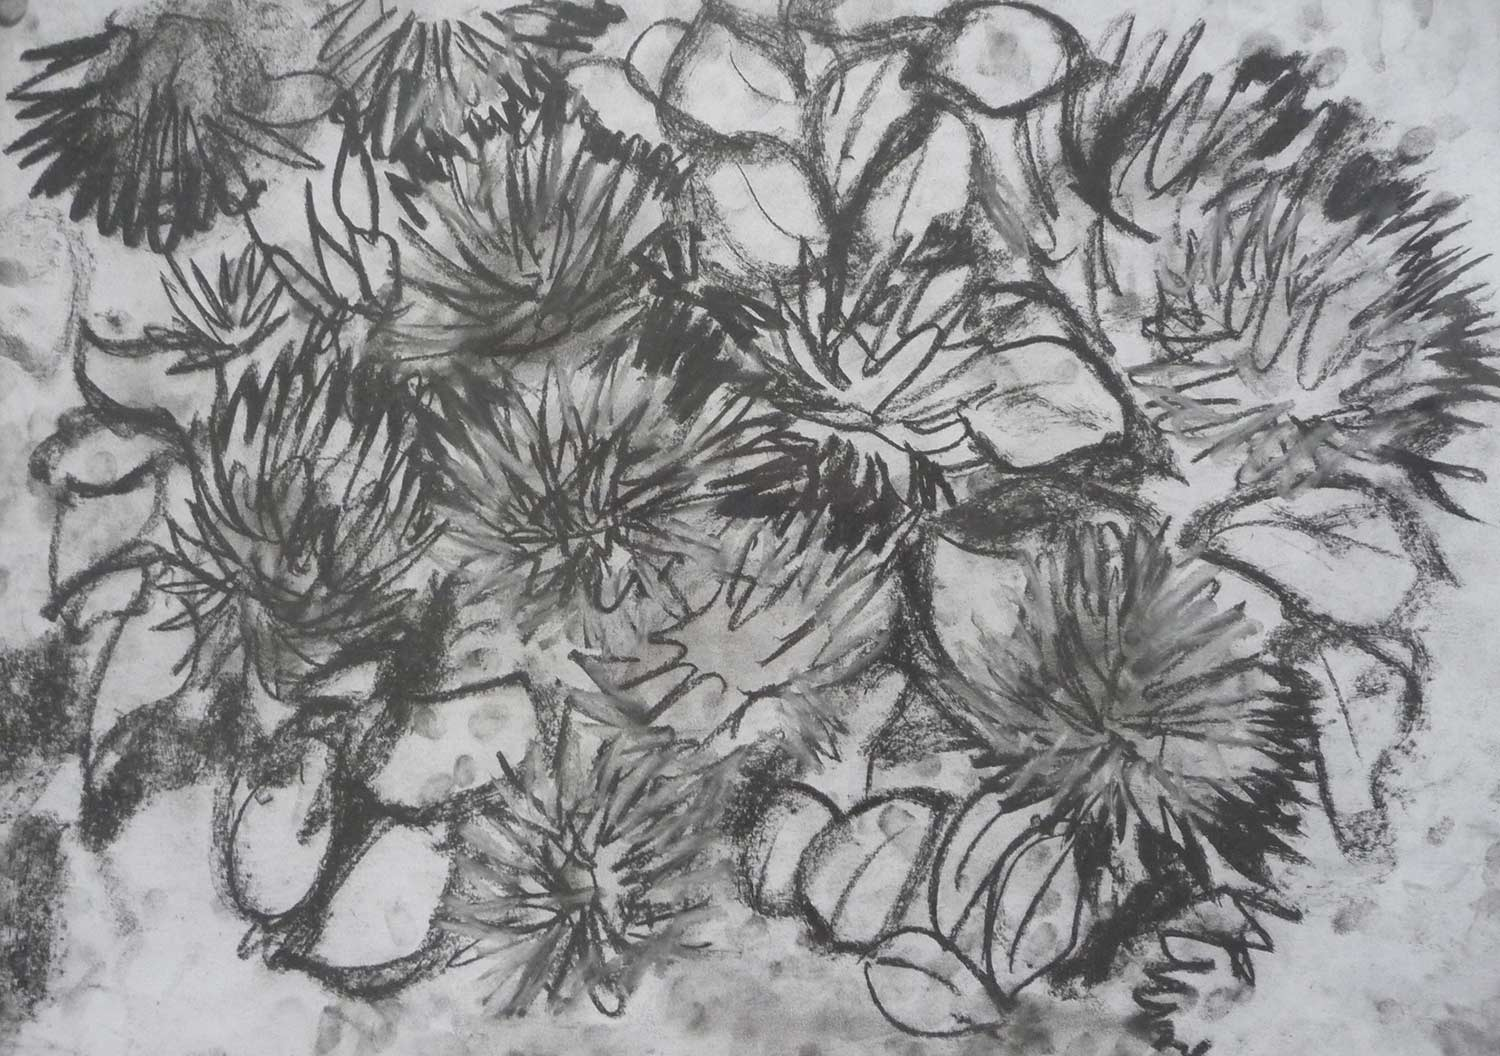 dark-drawing-pom-pom-flowers.jpg